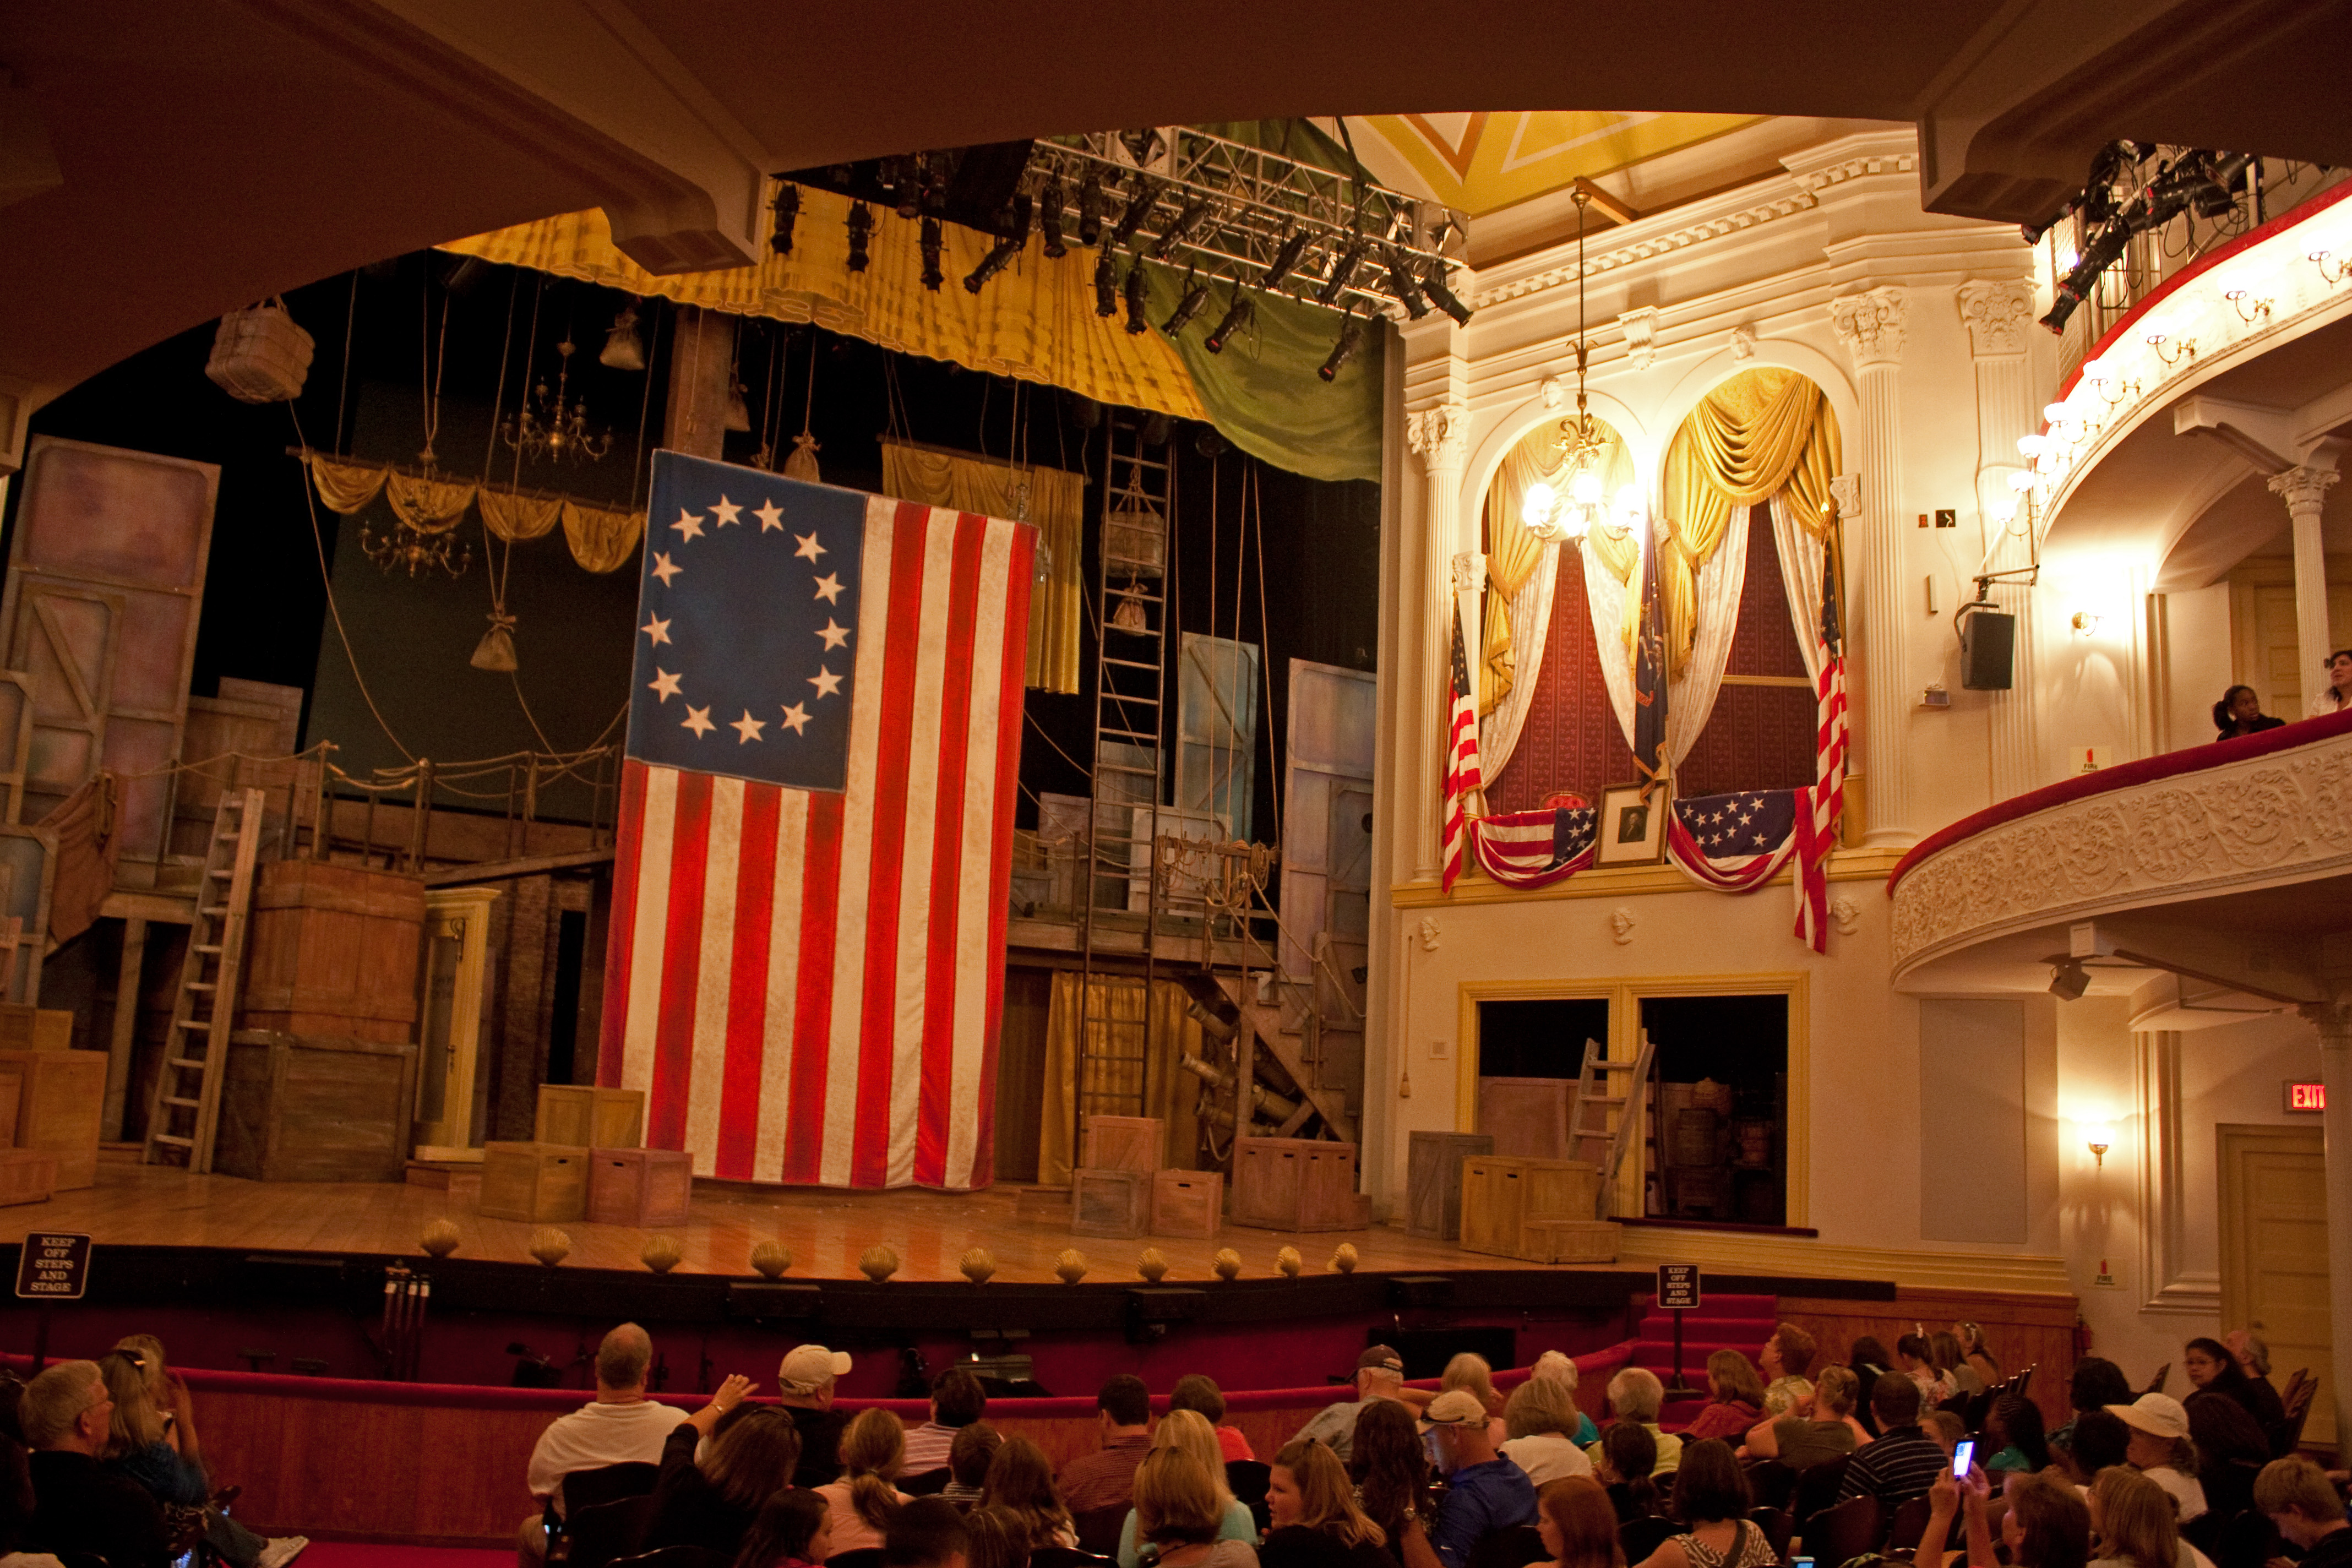 Interior of Ford's Theatre, Washington, D.C.  The presidential box is towards the right. Photo by Wknight94 talk. Licensed under CC BY-SA 3.0 via Wikimedia Commons.